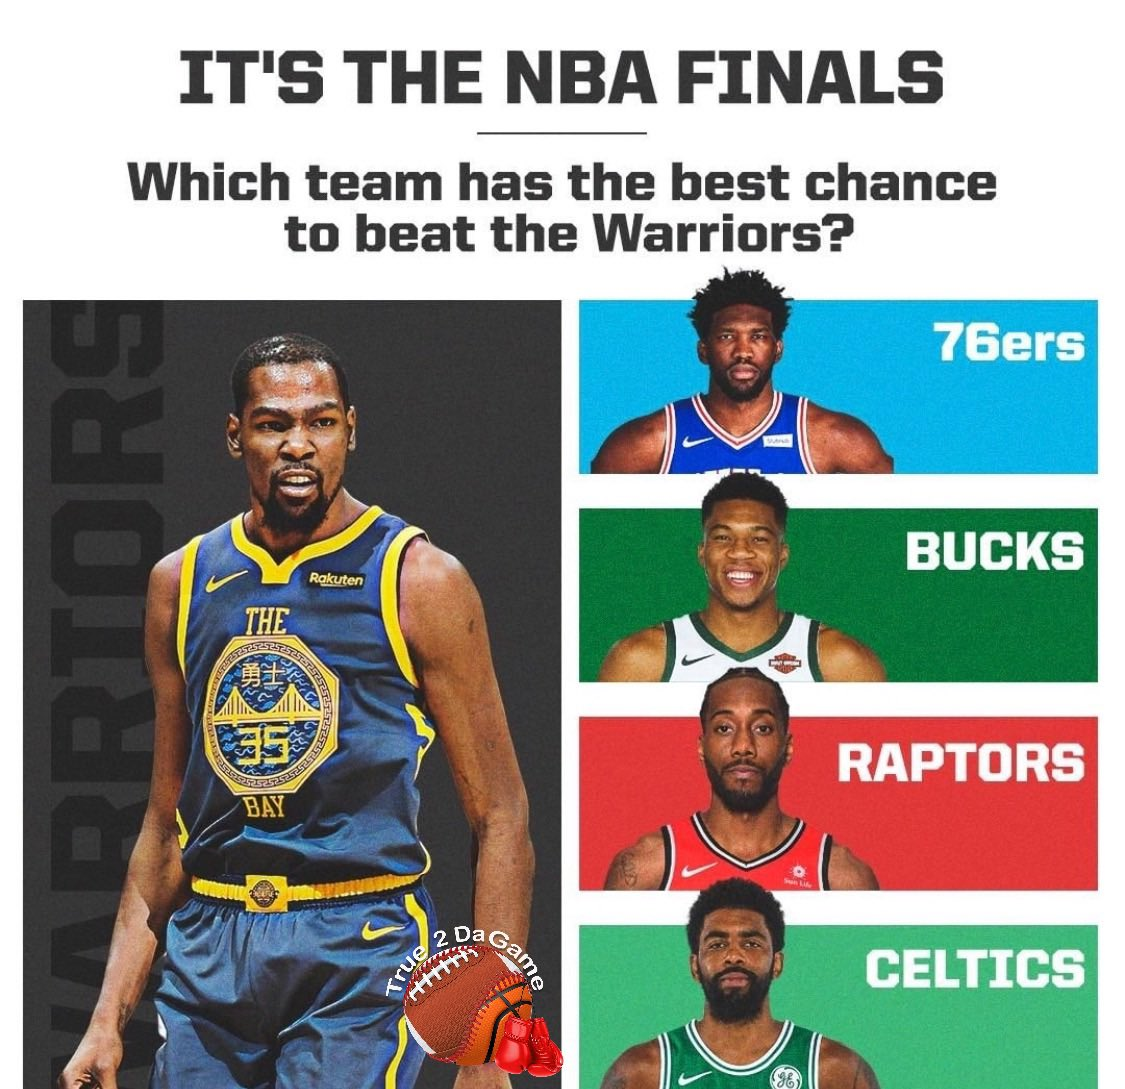 Do the @sixers have enough to beat the @warriors in the finals?🤔 #TheProcess #HereTheyCome #DubNation #NBA #NBAAllStar #NBAonABC (via @espn )  https://www.true2dagame.com/nbabasketball